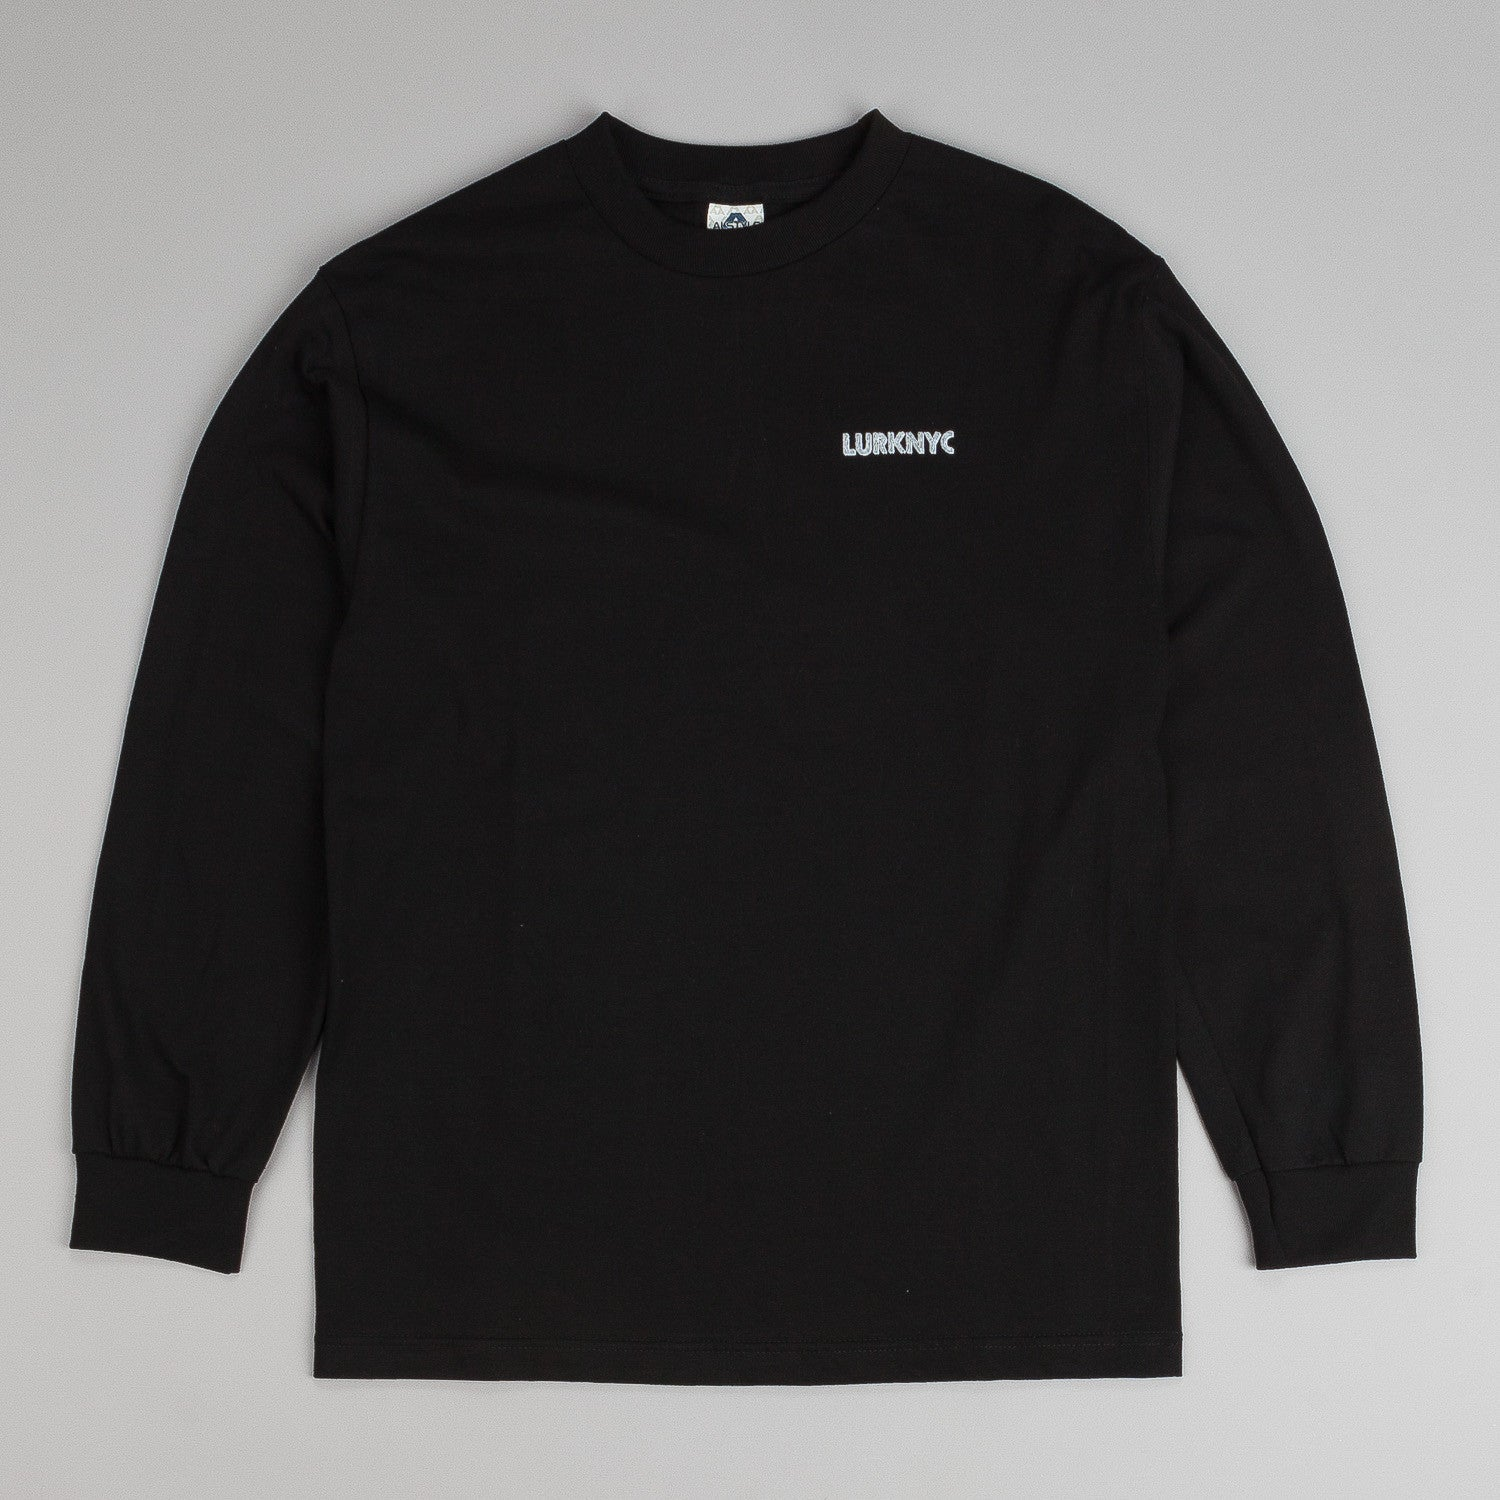 Lurk NYC Jazz L/S T-Shirt